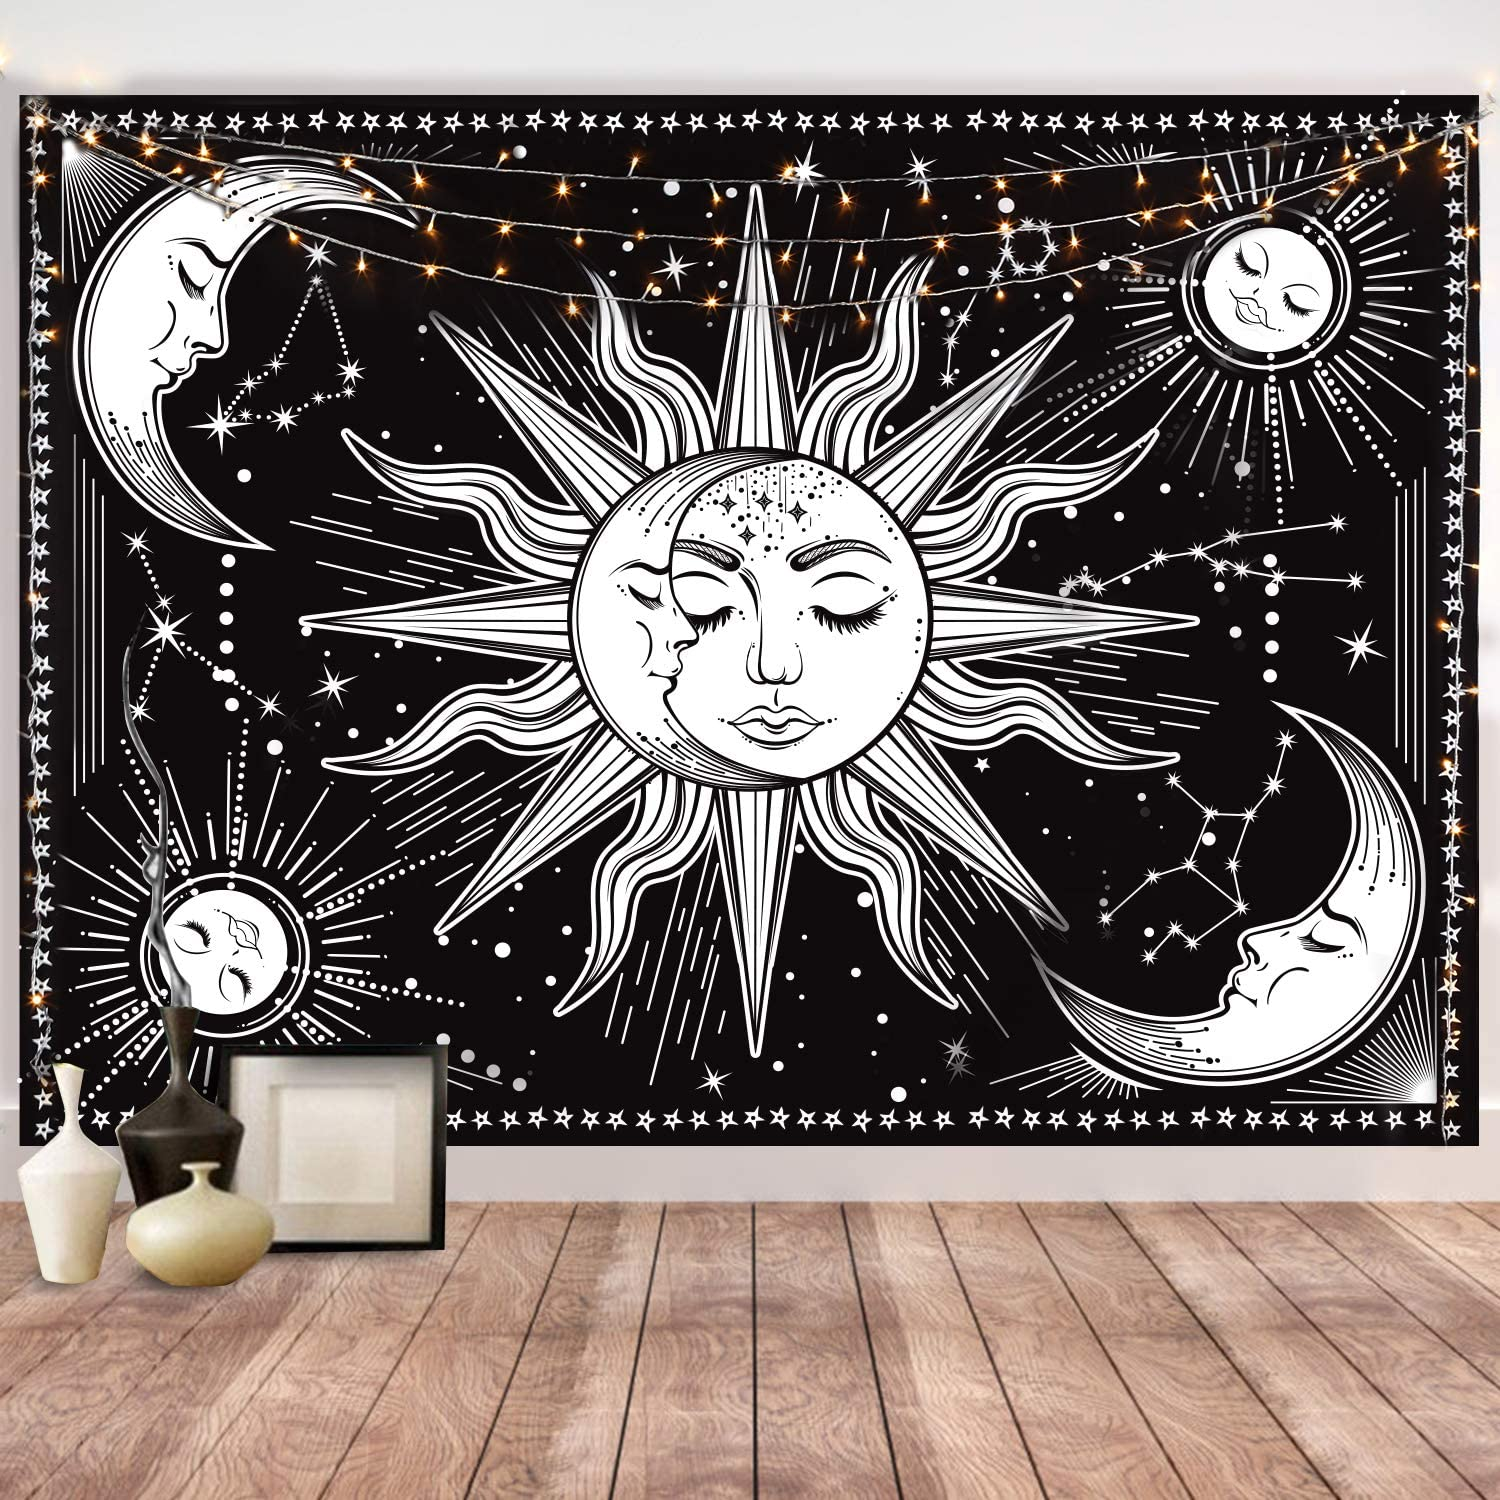 HOTMIR Wall Tapestry - Black Tapestry Wall Hanging as Wall Art and Home Decor for Bedroom, Living Room, Dorm Decor (54x72 Inches, 140x185 cm)